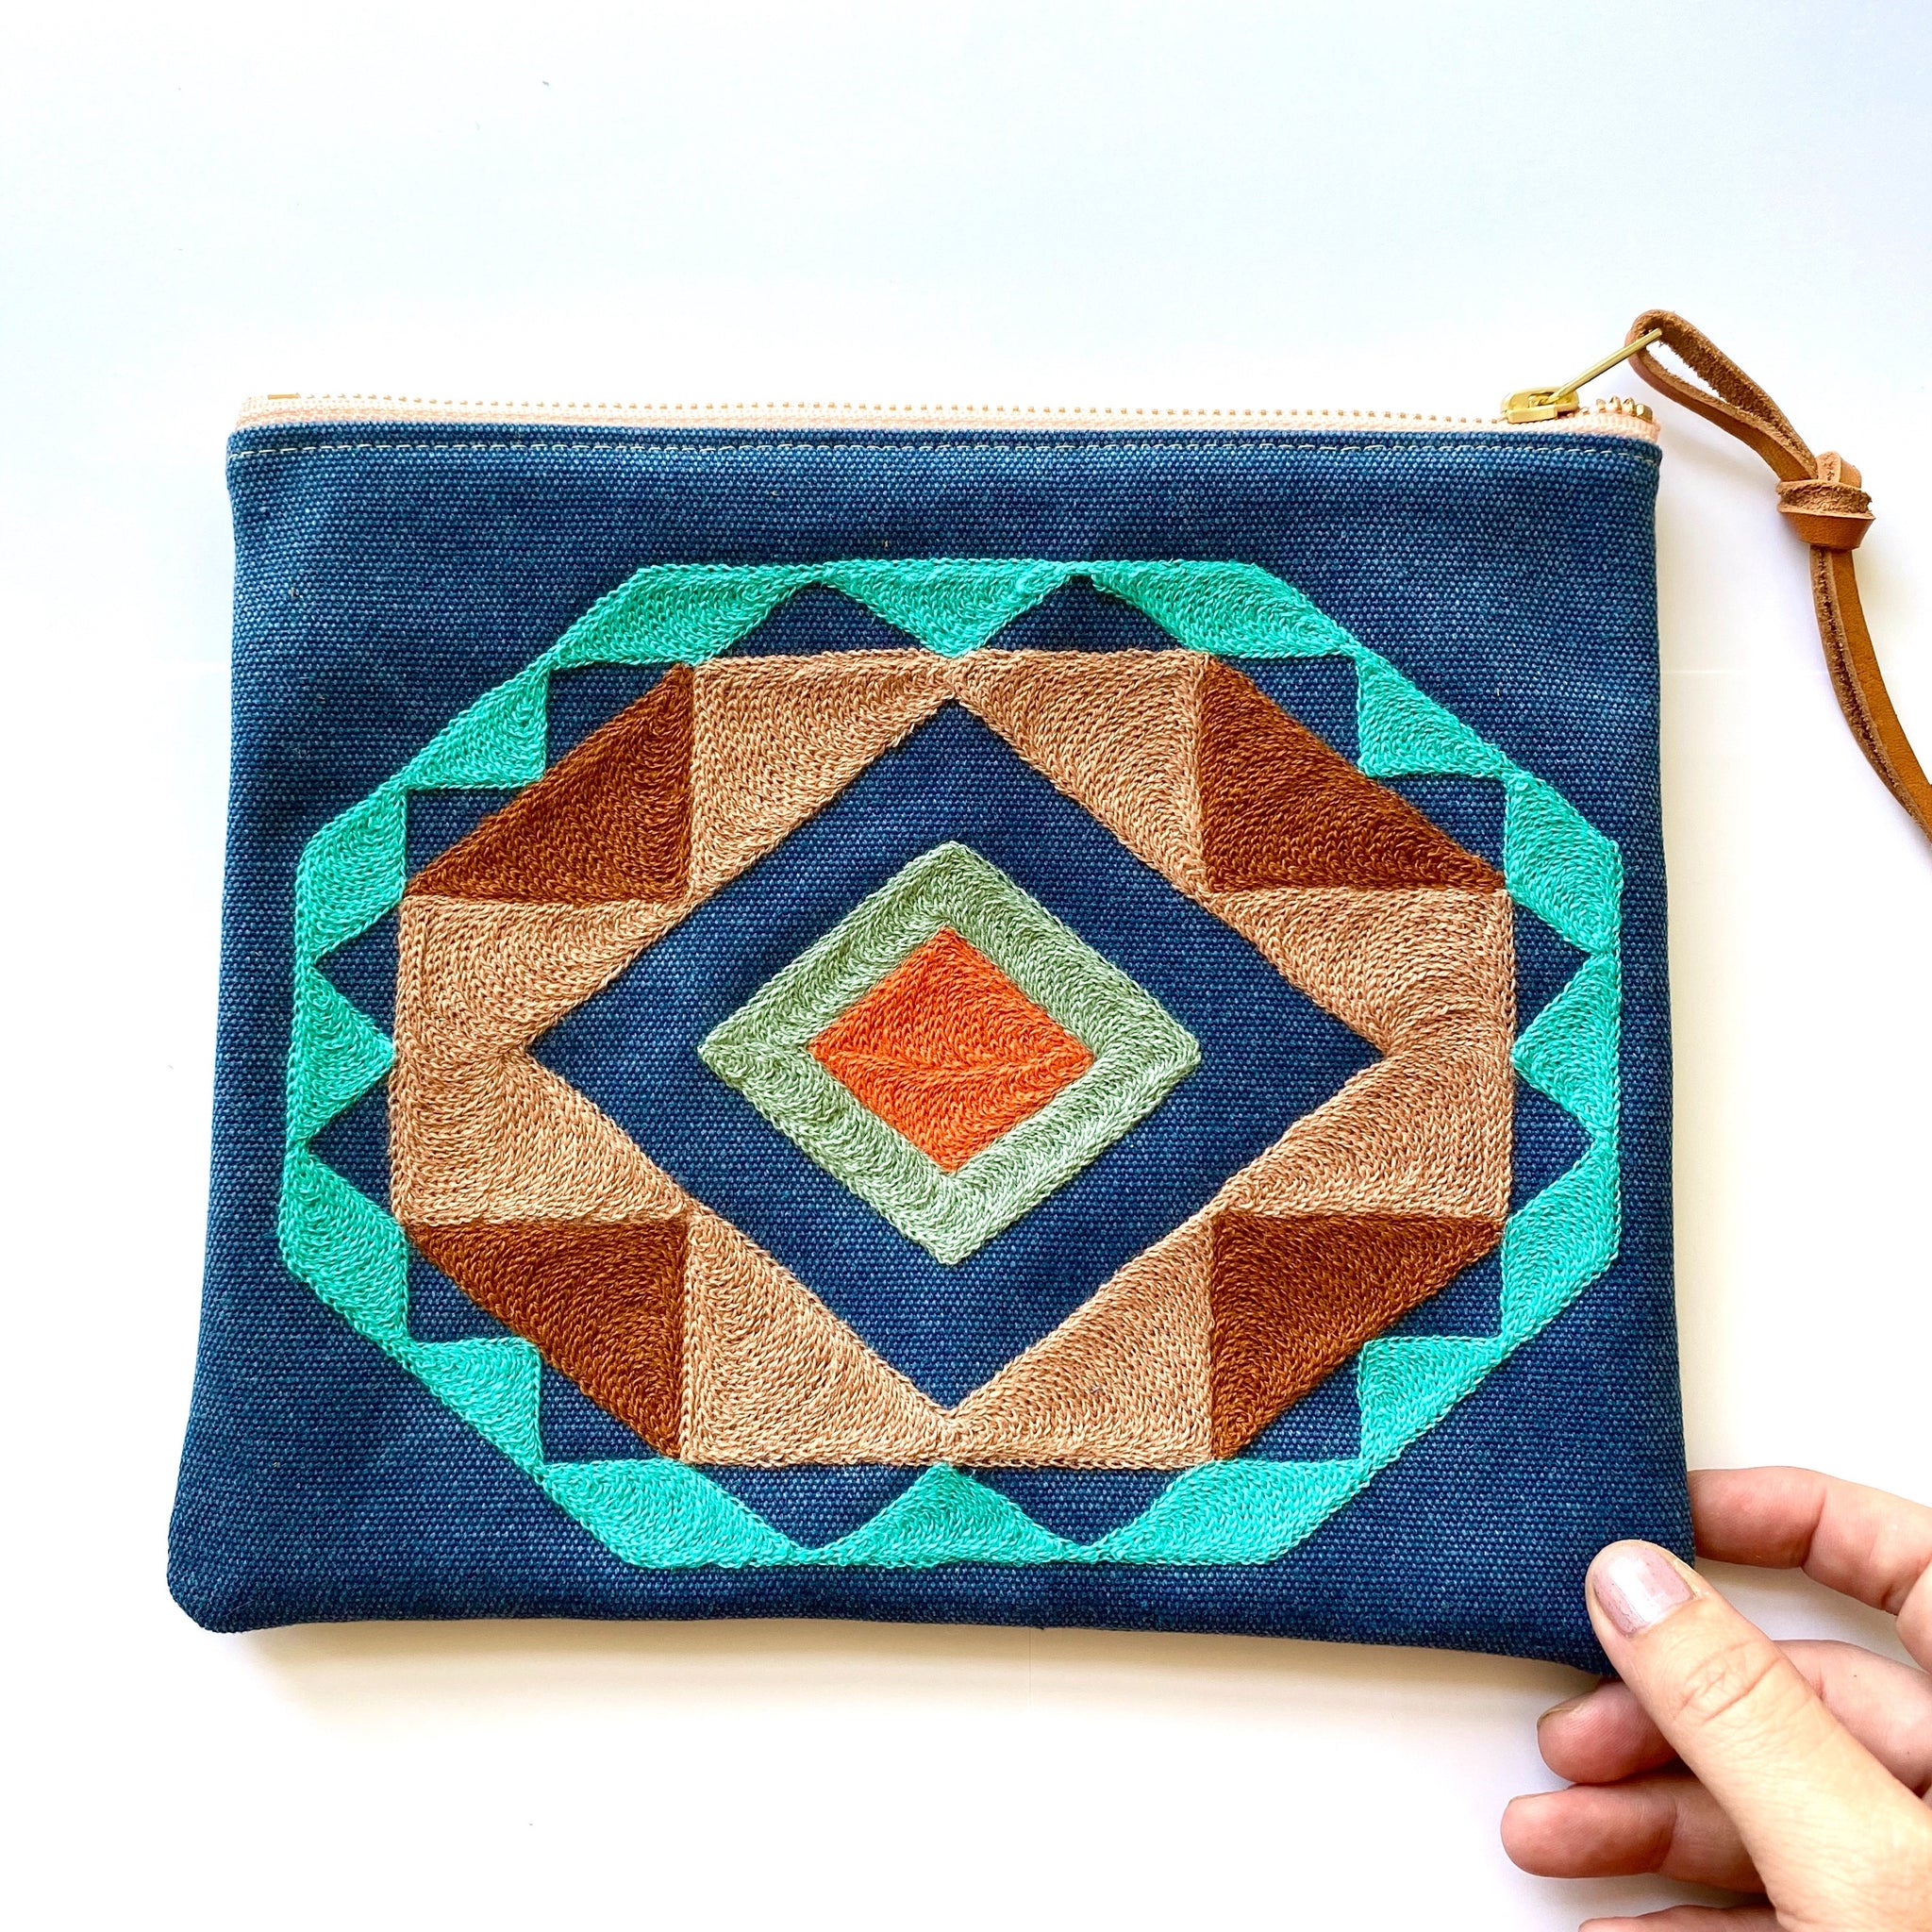 Patterned Zippered Bag